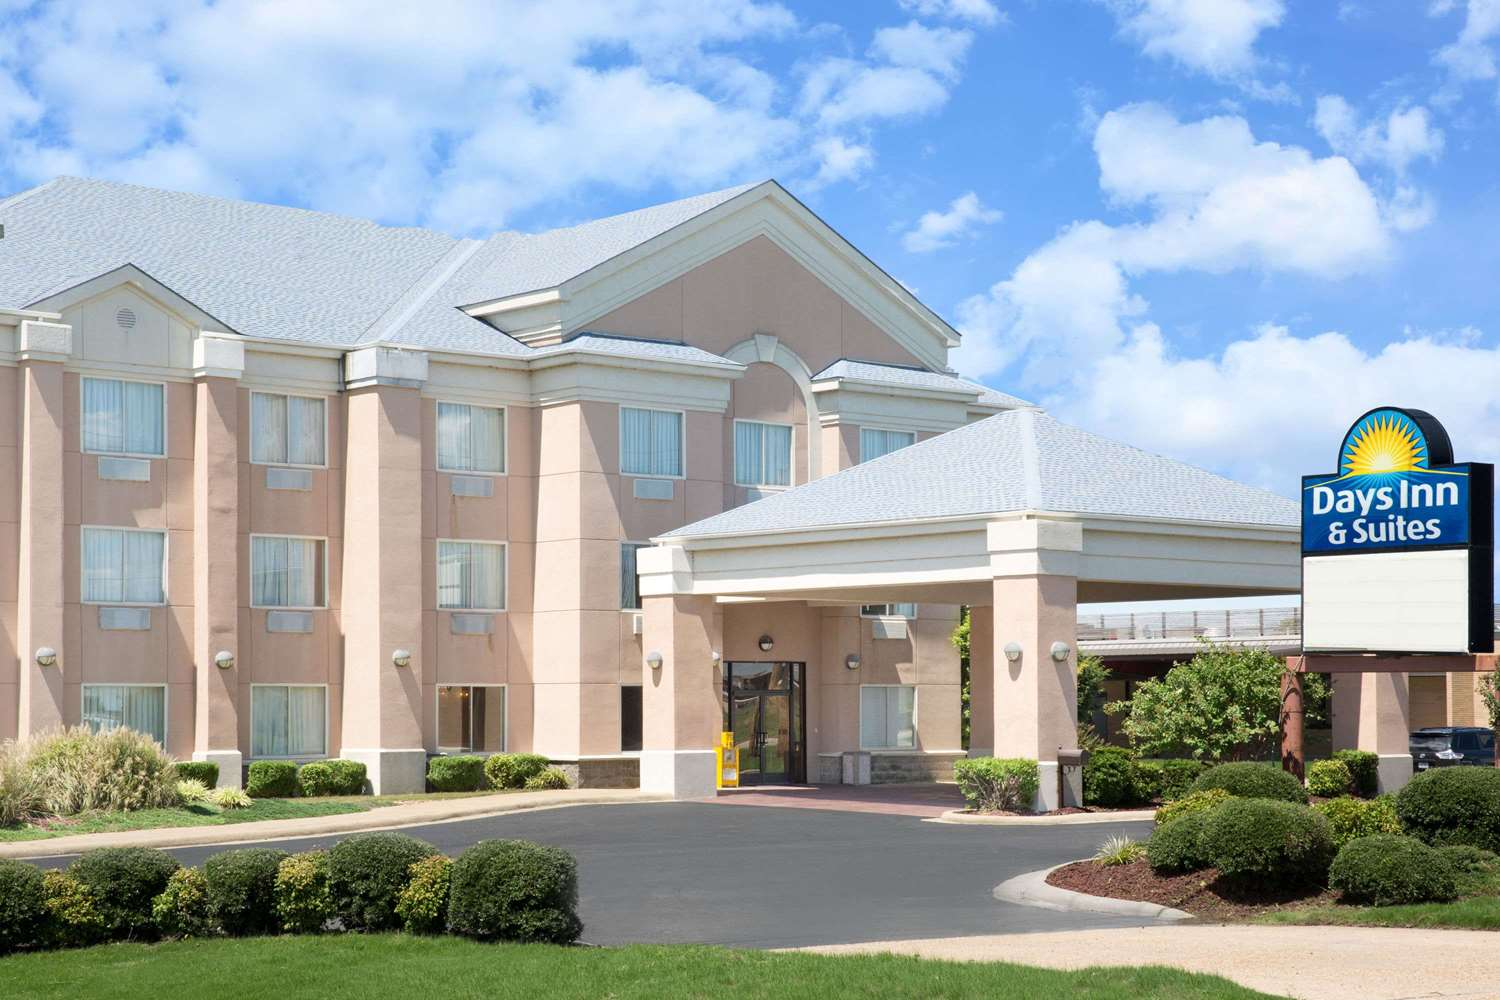 Exterior View Days Inn Suites Pocahontas